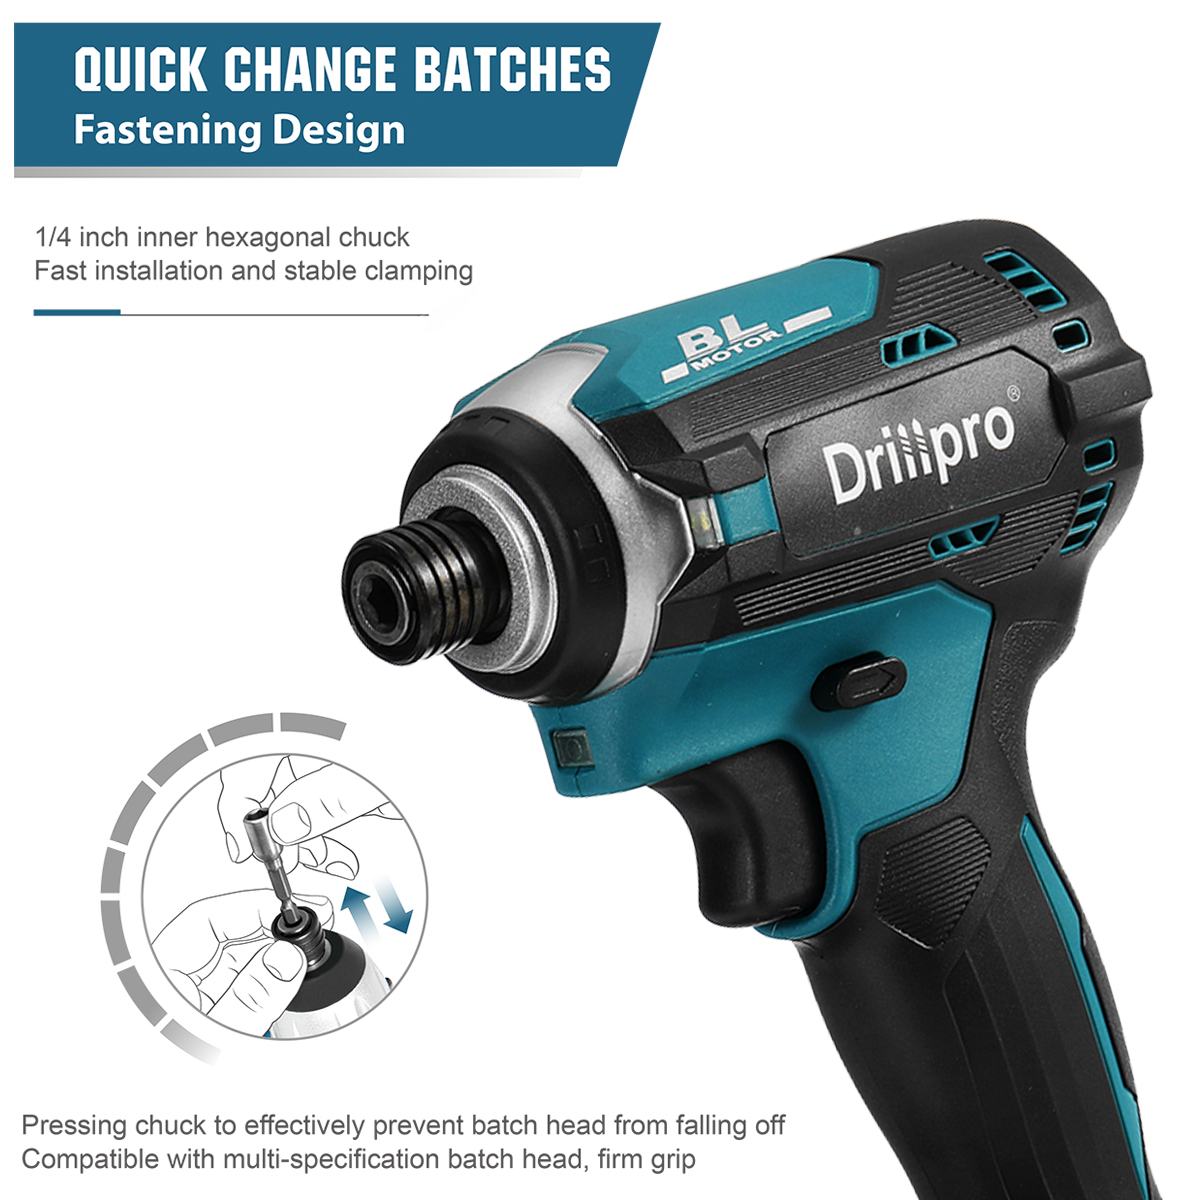 Tools : 18V Cordless Electric Screwdriver Speed Brushless Impact Wrench Rechargable Drill Driver  3 LED Light For Makita Battery